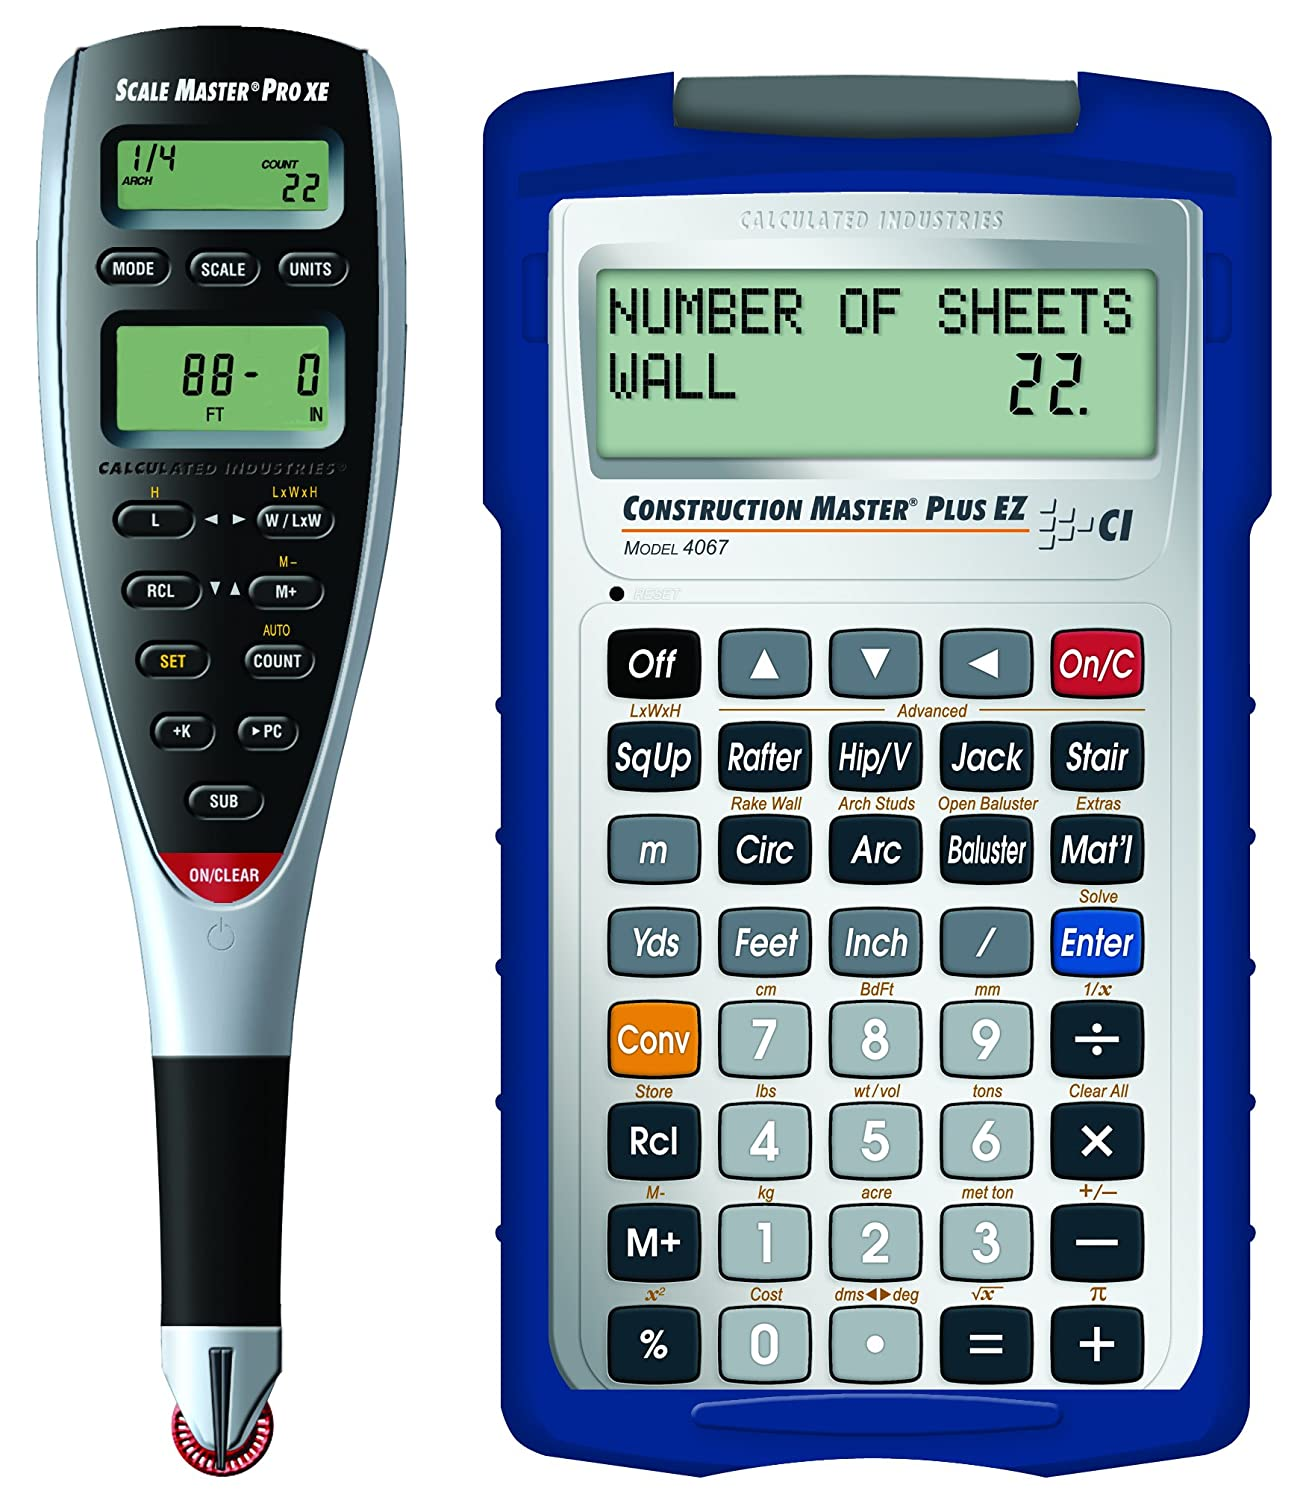 Calculated Industries 6335 Scale Master ProXE Advanced Digital Plan Measure with PC Interface